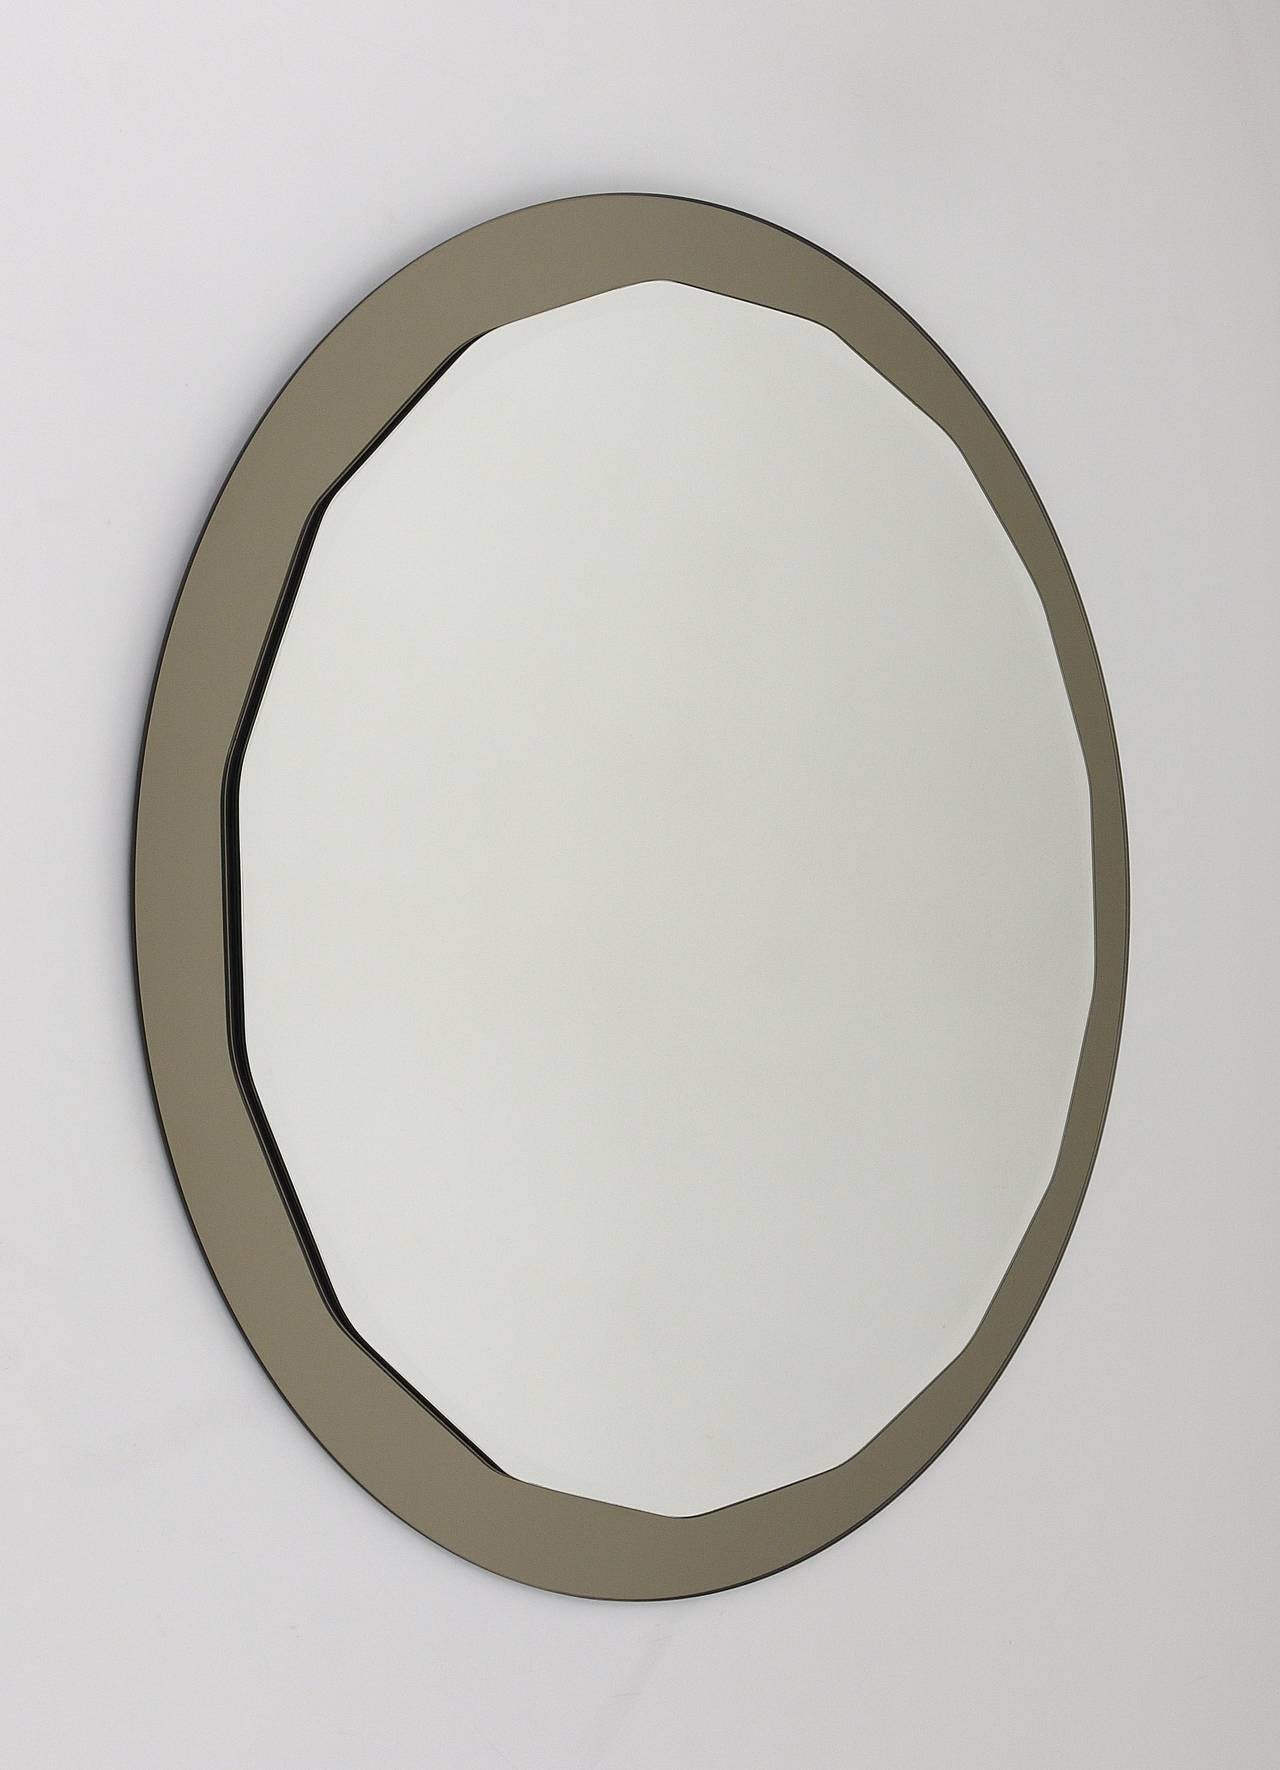 A very beautiful wall mirror from the 1960s, made in Italy by Crystal Arte. Round, scalloped faceted mirror with smoked grey mirror backplate glass. Excellent condition, no damages.